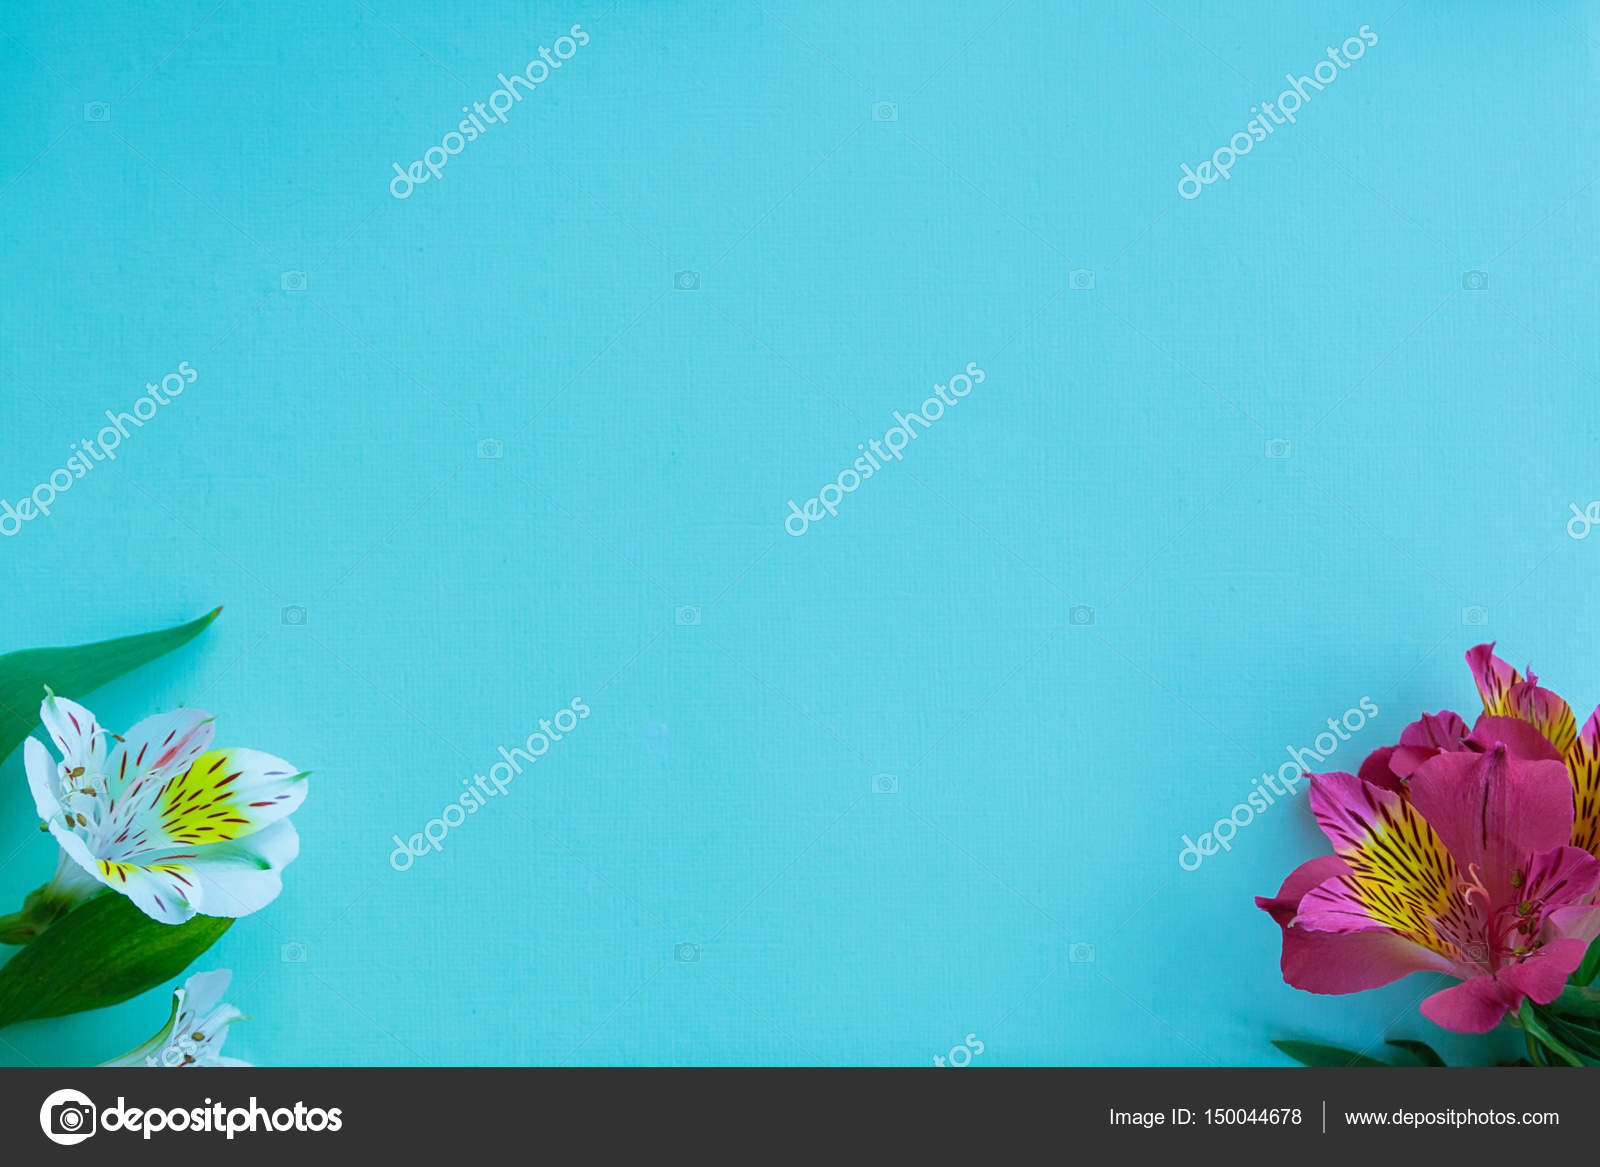 Summer and spring background purple and white alstroemeria flowers purple and white alstroemeria flowers on a blue background free izmirmasajfo